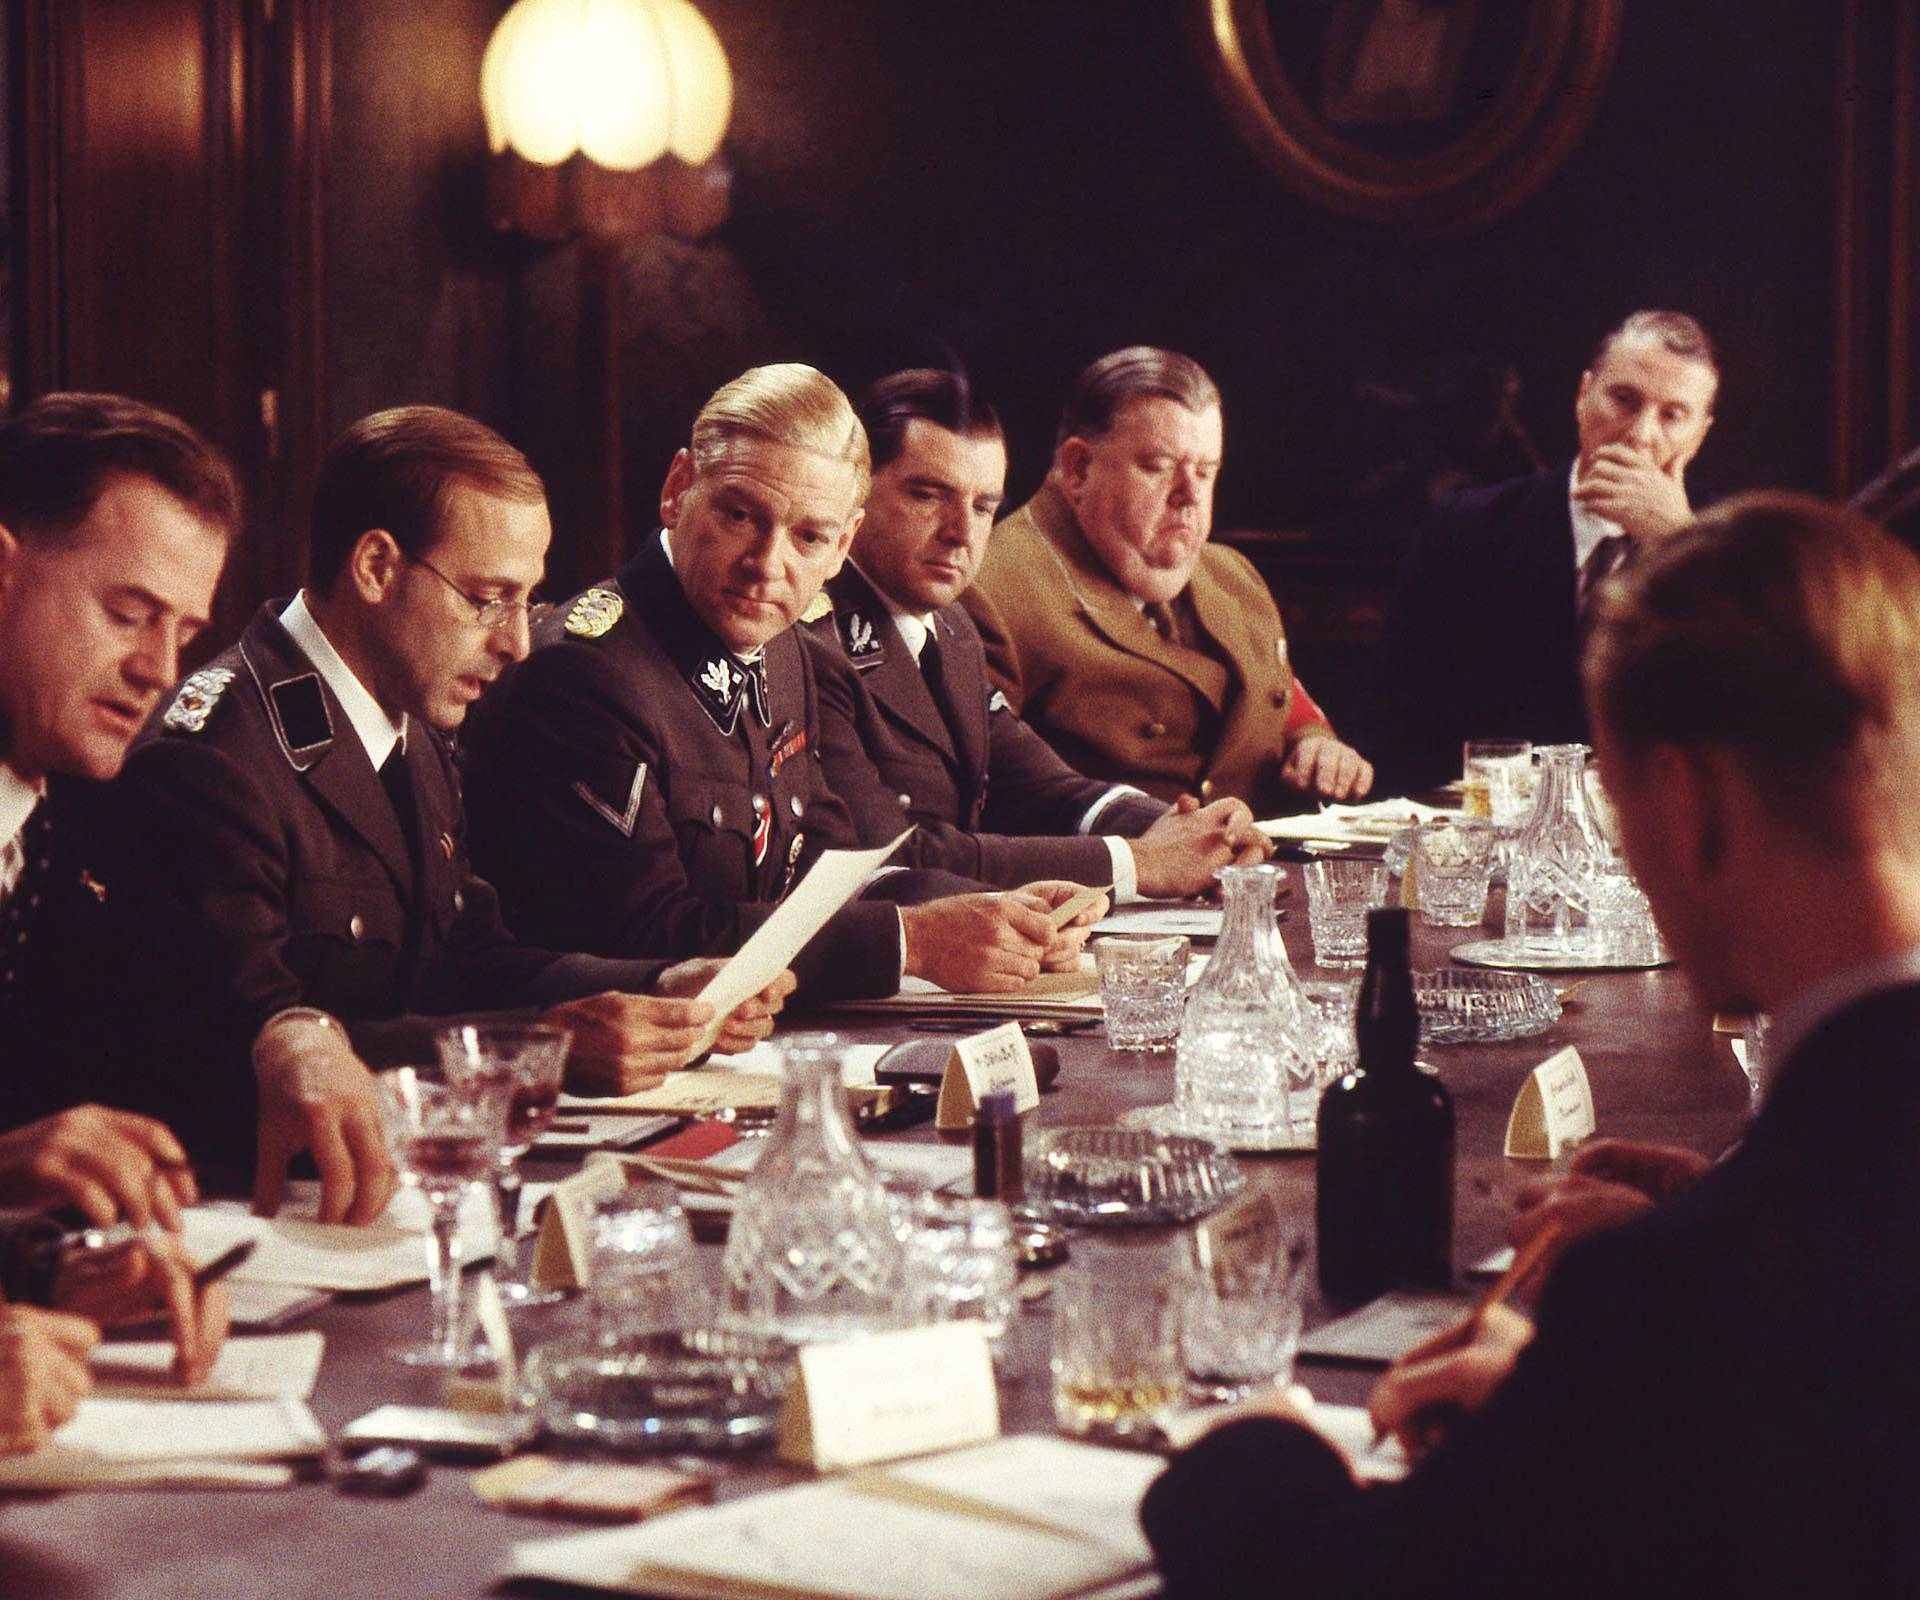 2001 - Conspiracy: The Meeting At Wannsee - Movie Set